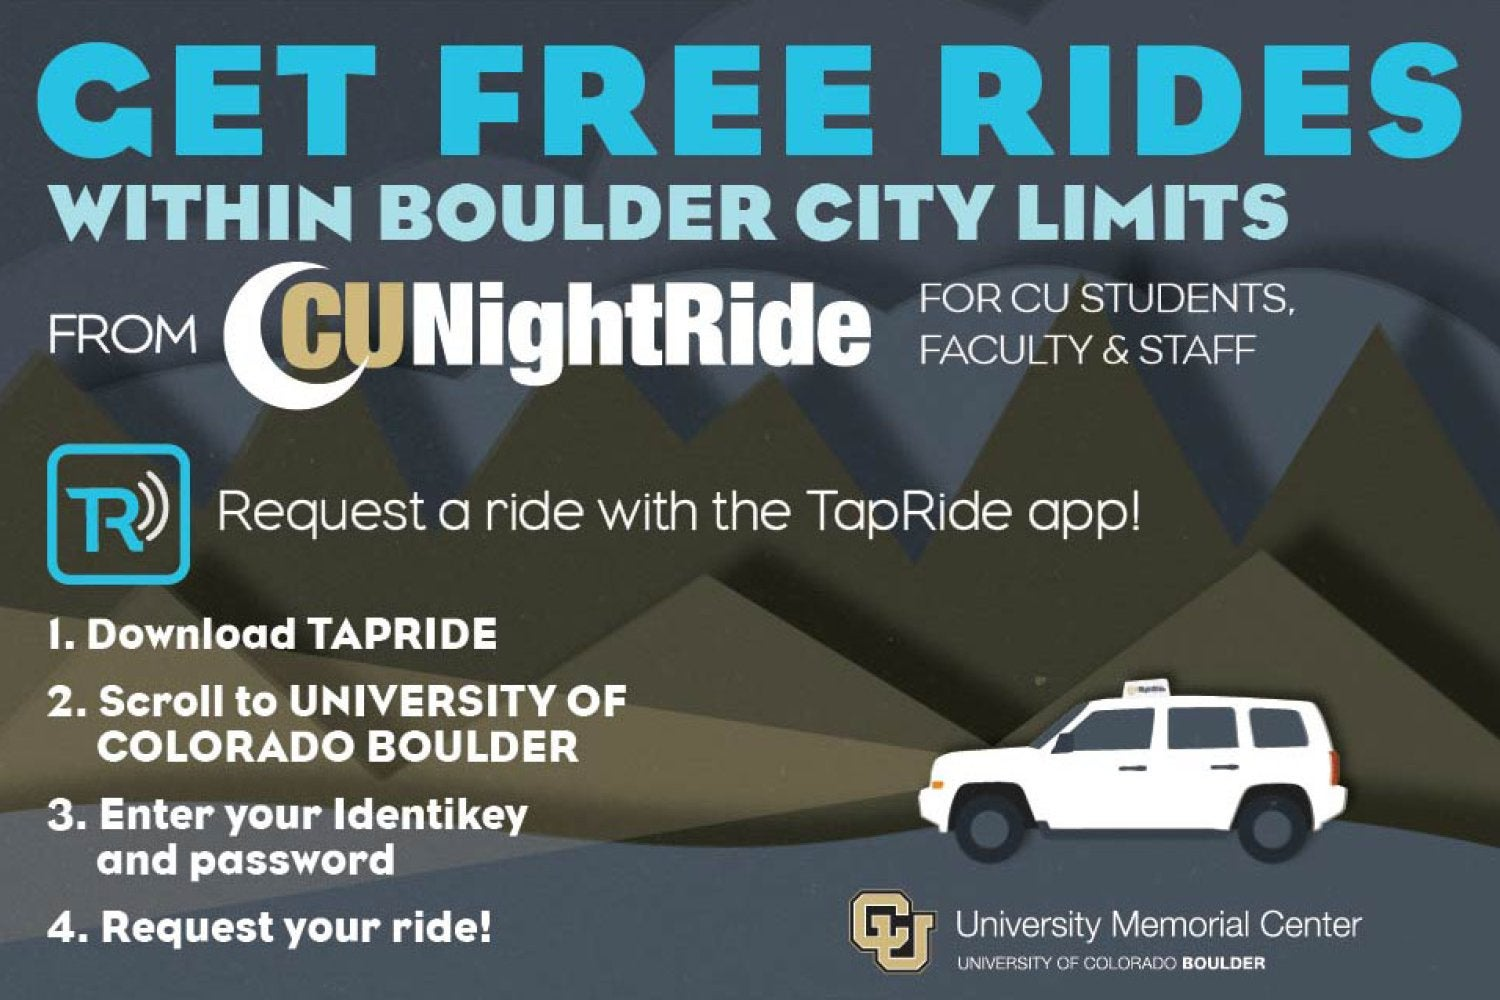 Request a ride with the TapRide app